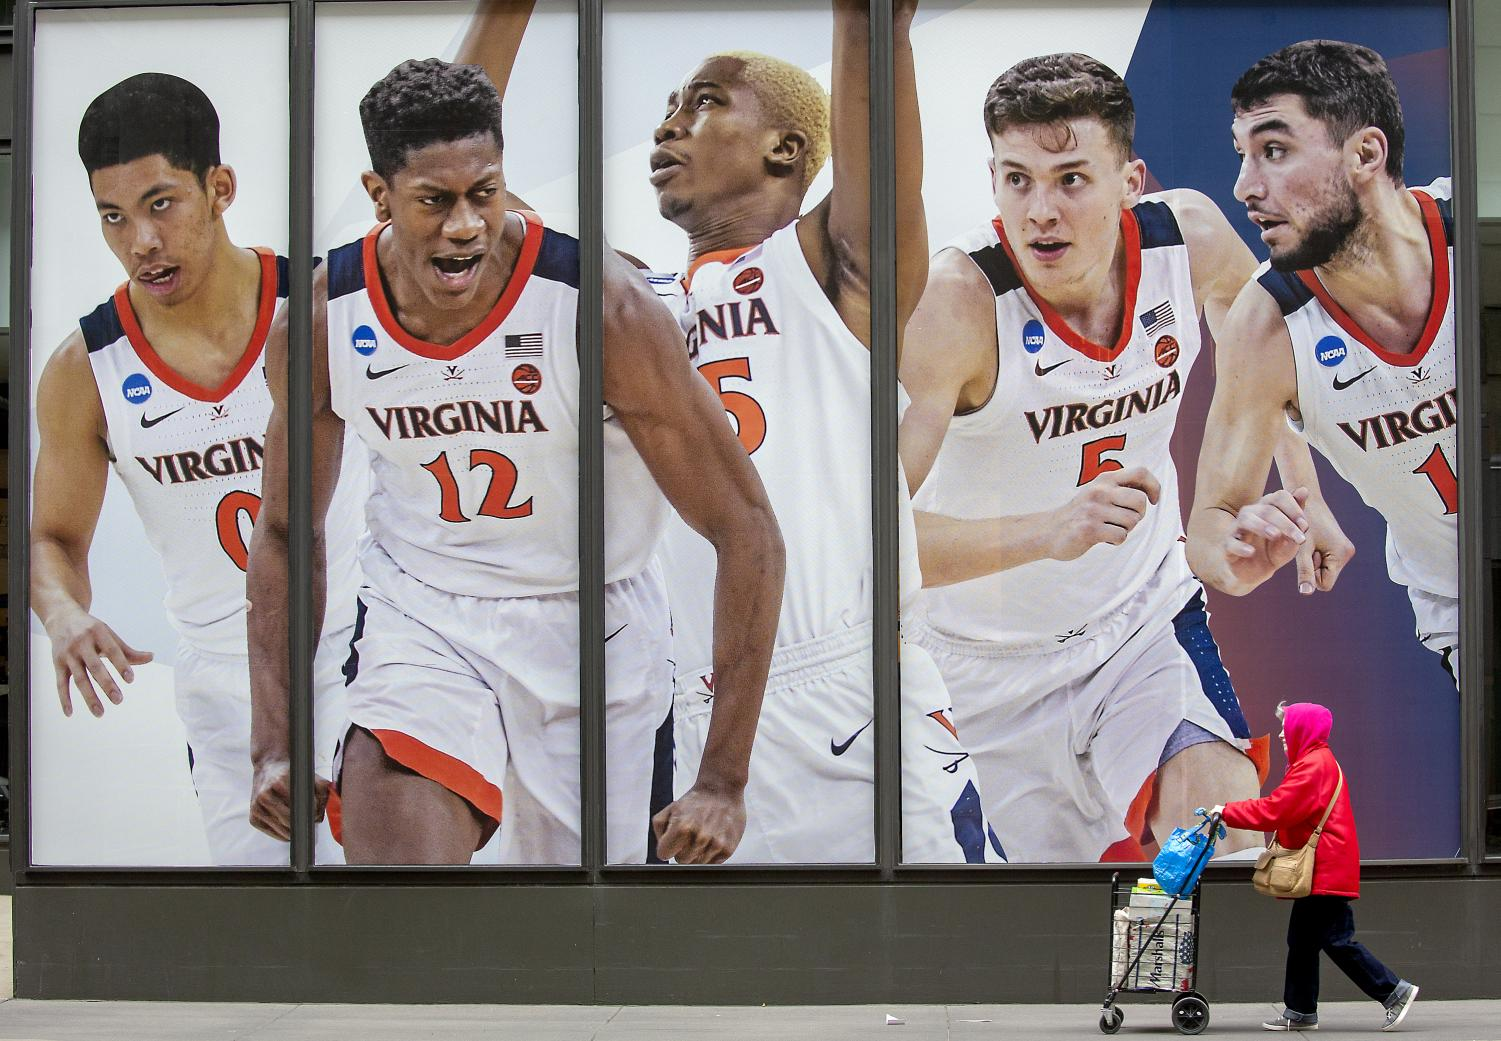 Pedestrians made their way by giant-sized posters of Final Four players near 7th Street and Marquette Avenue on the windows of the IDS Center, Monday, April 1, 2019 in Minneapolis, Minn.